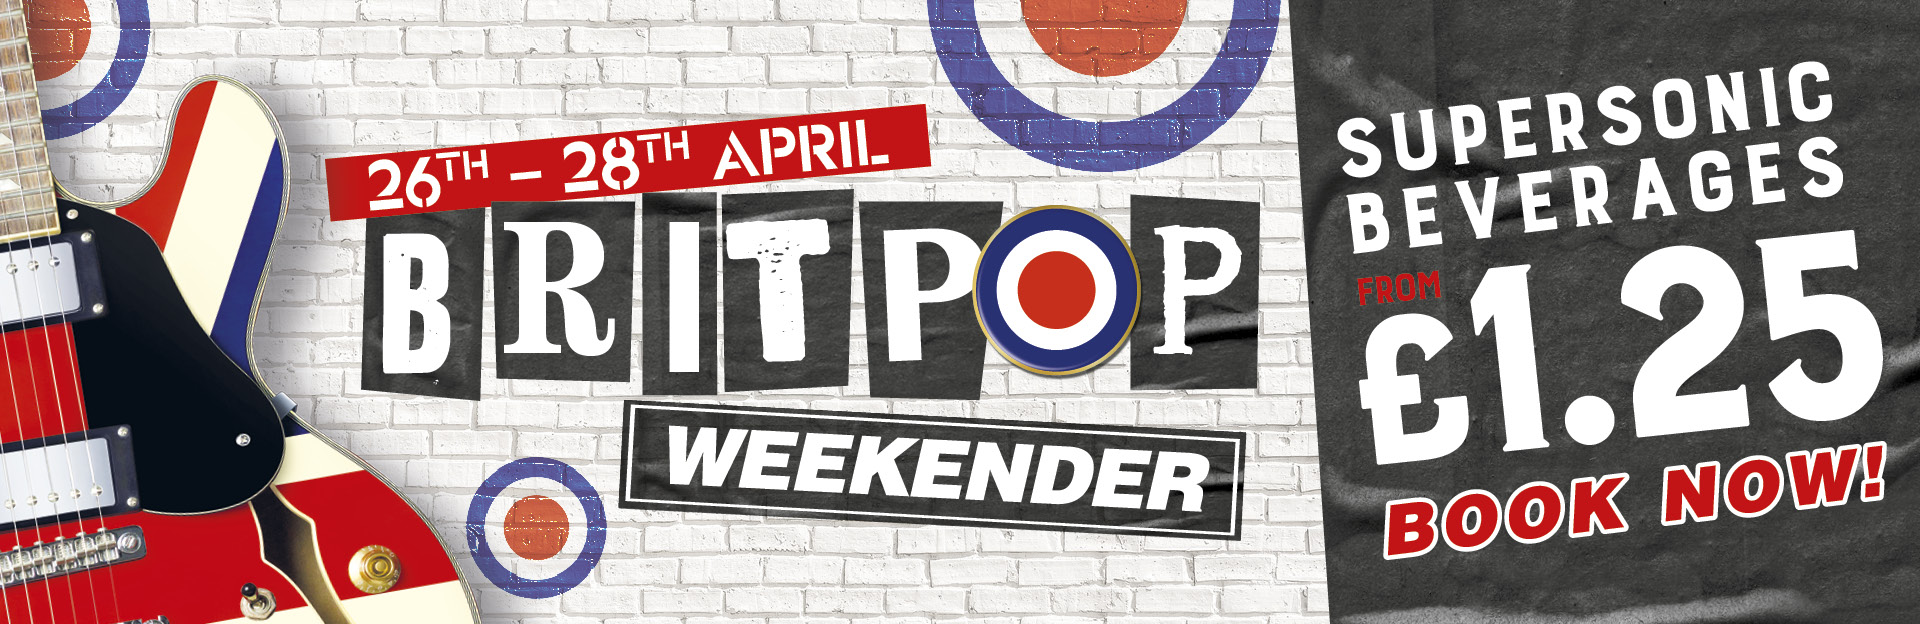 Britpop Weekender at Stags Head